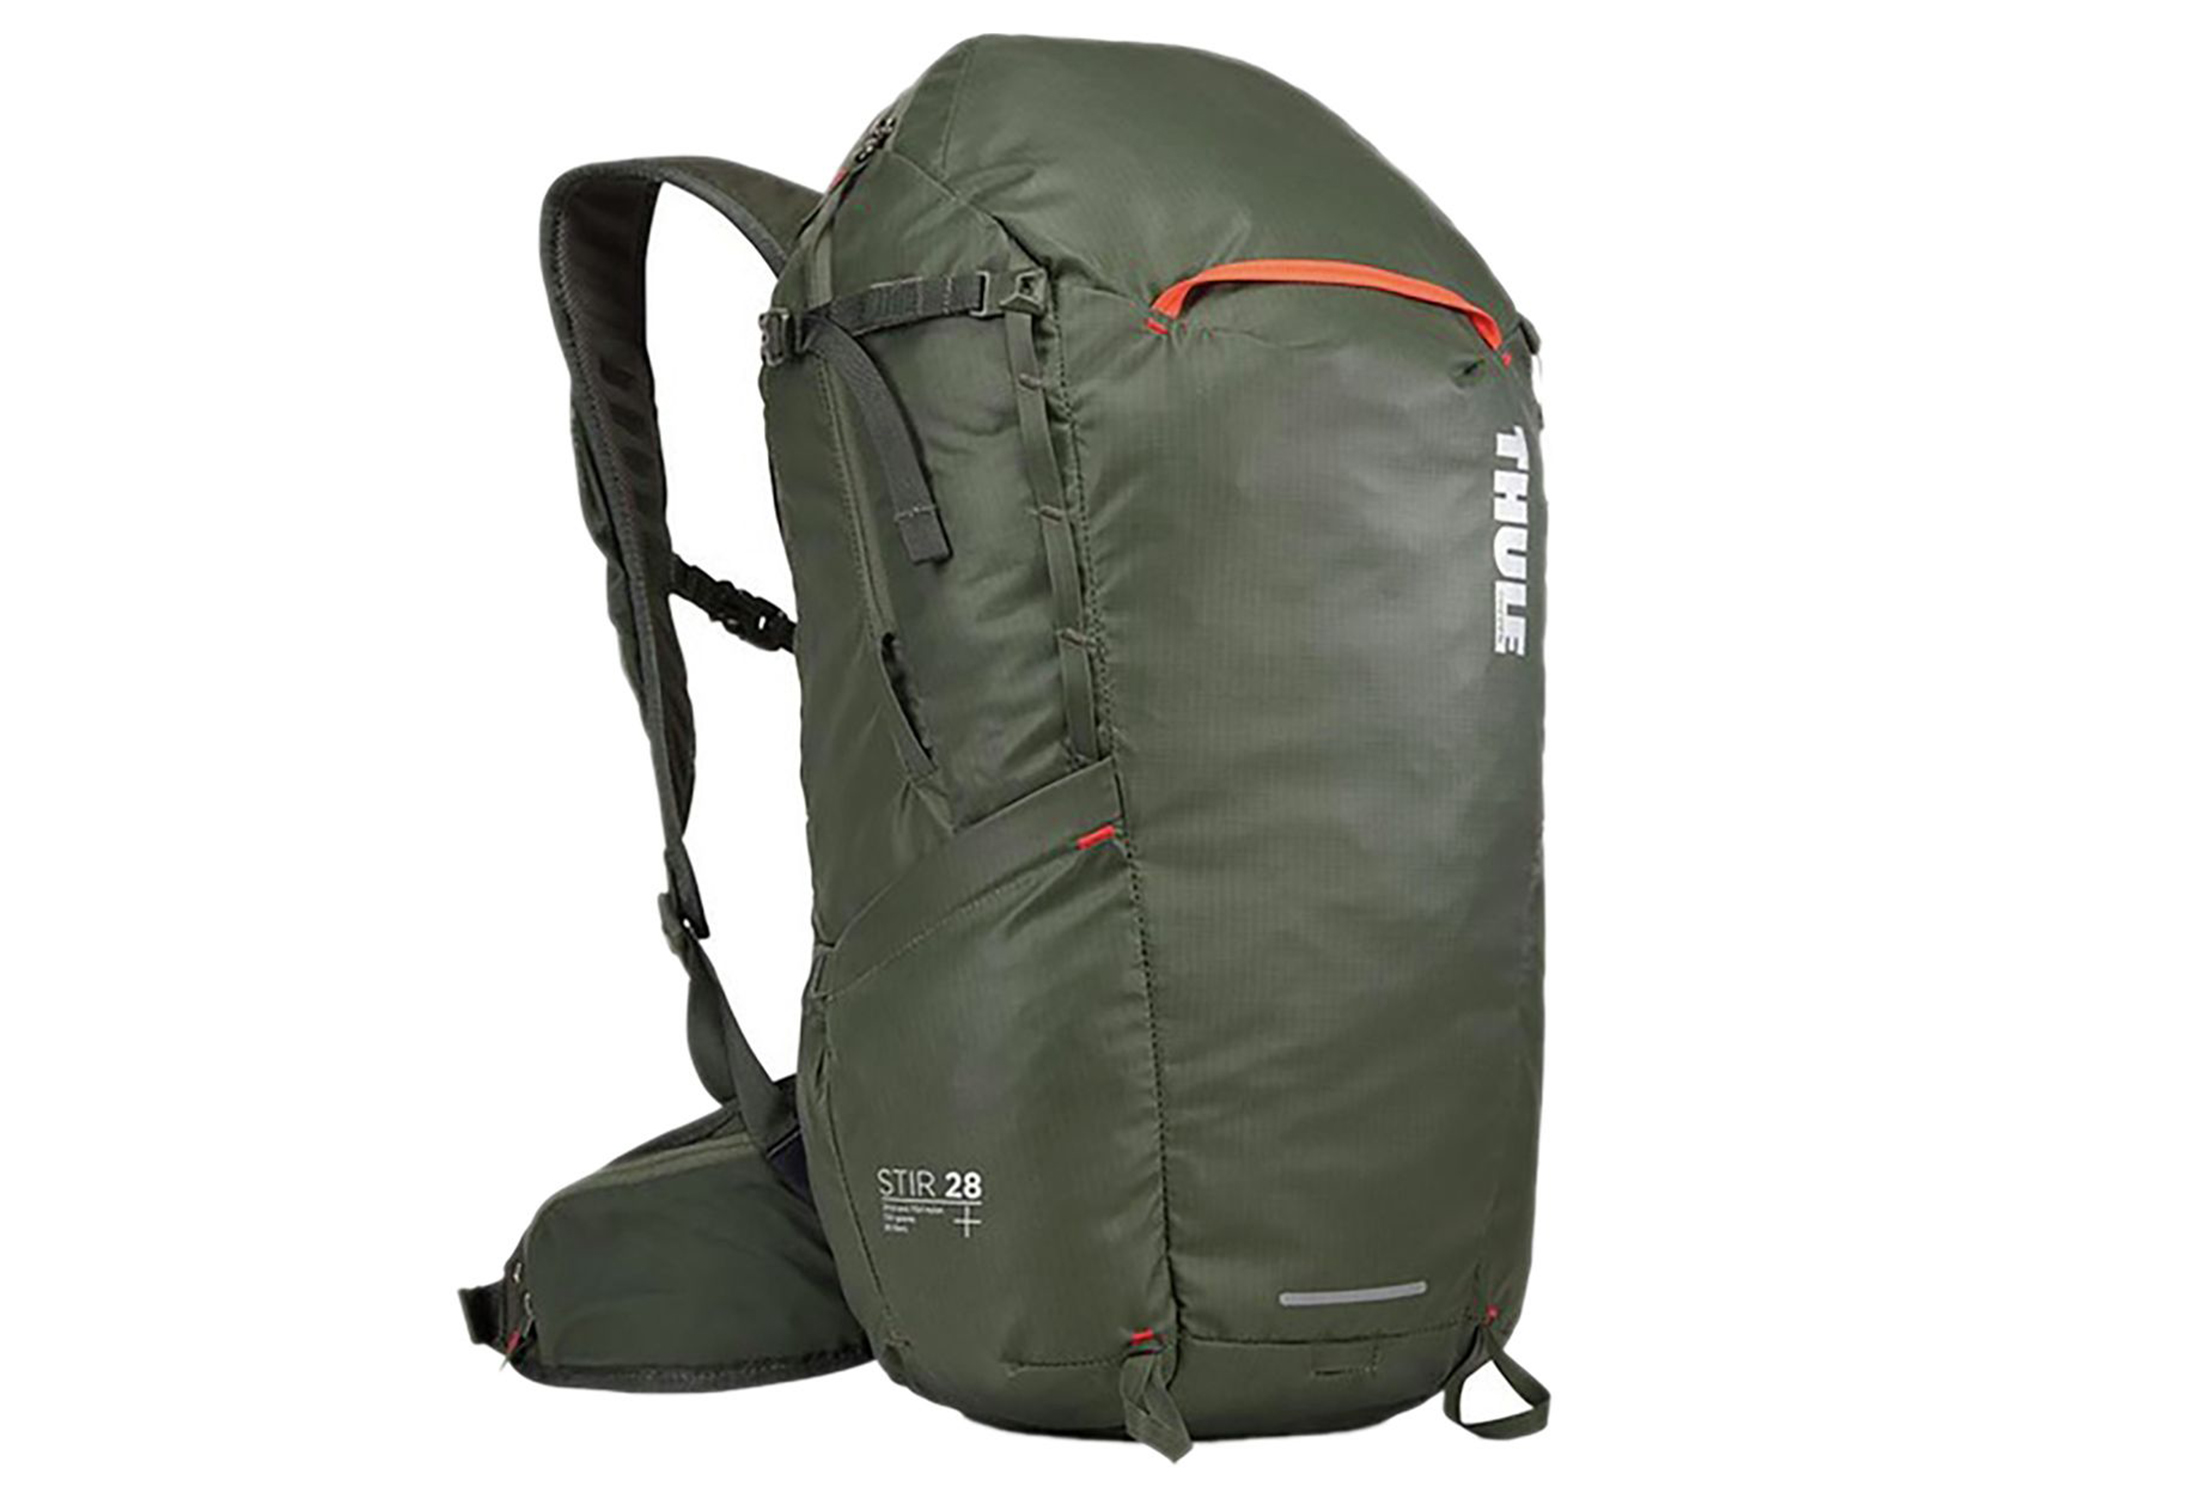 Thule 28L backpack